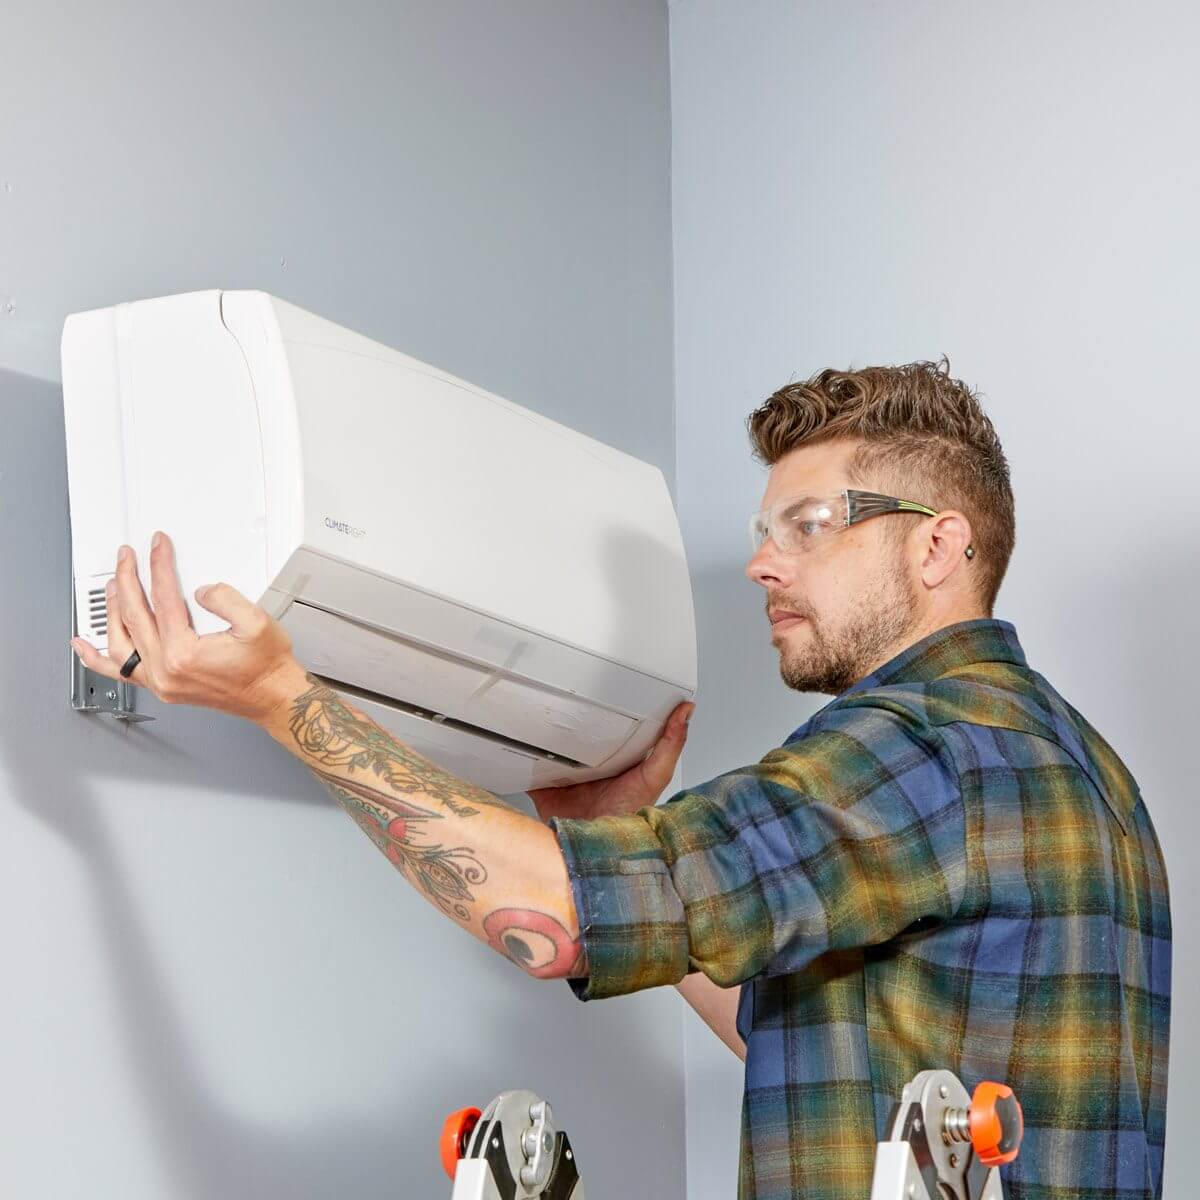 HOW TO HEAT A GARAGE WITH GET A DUCTLESS HEATING AND COOLING